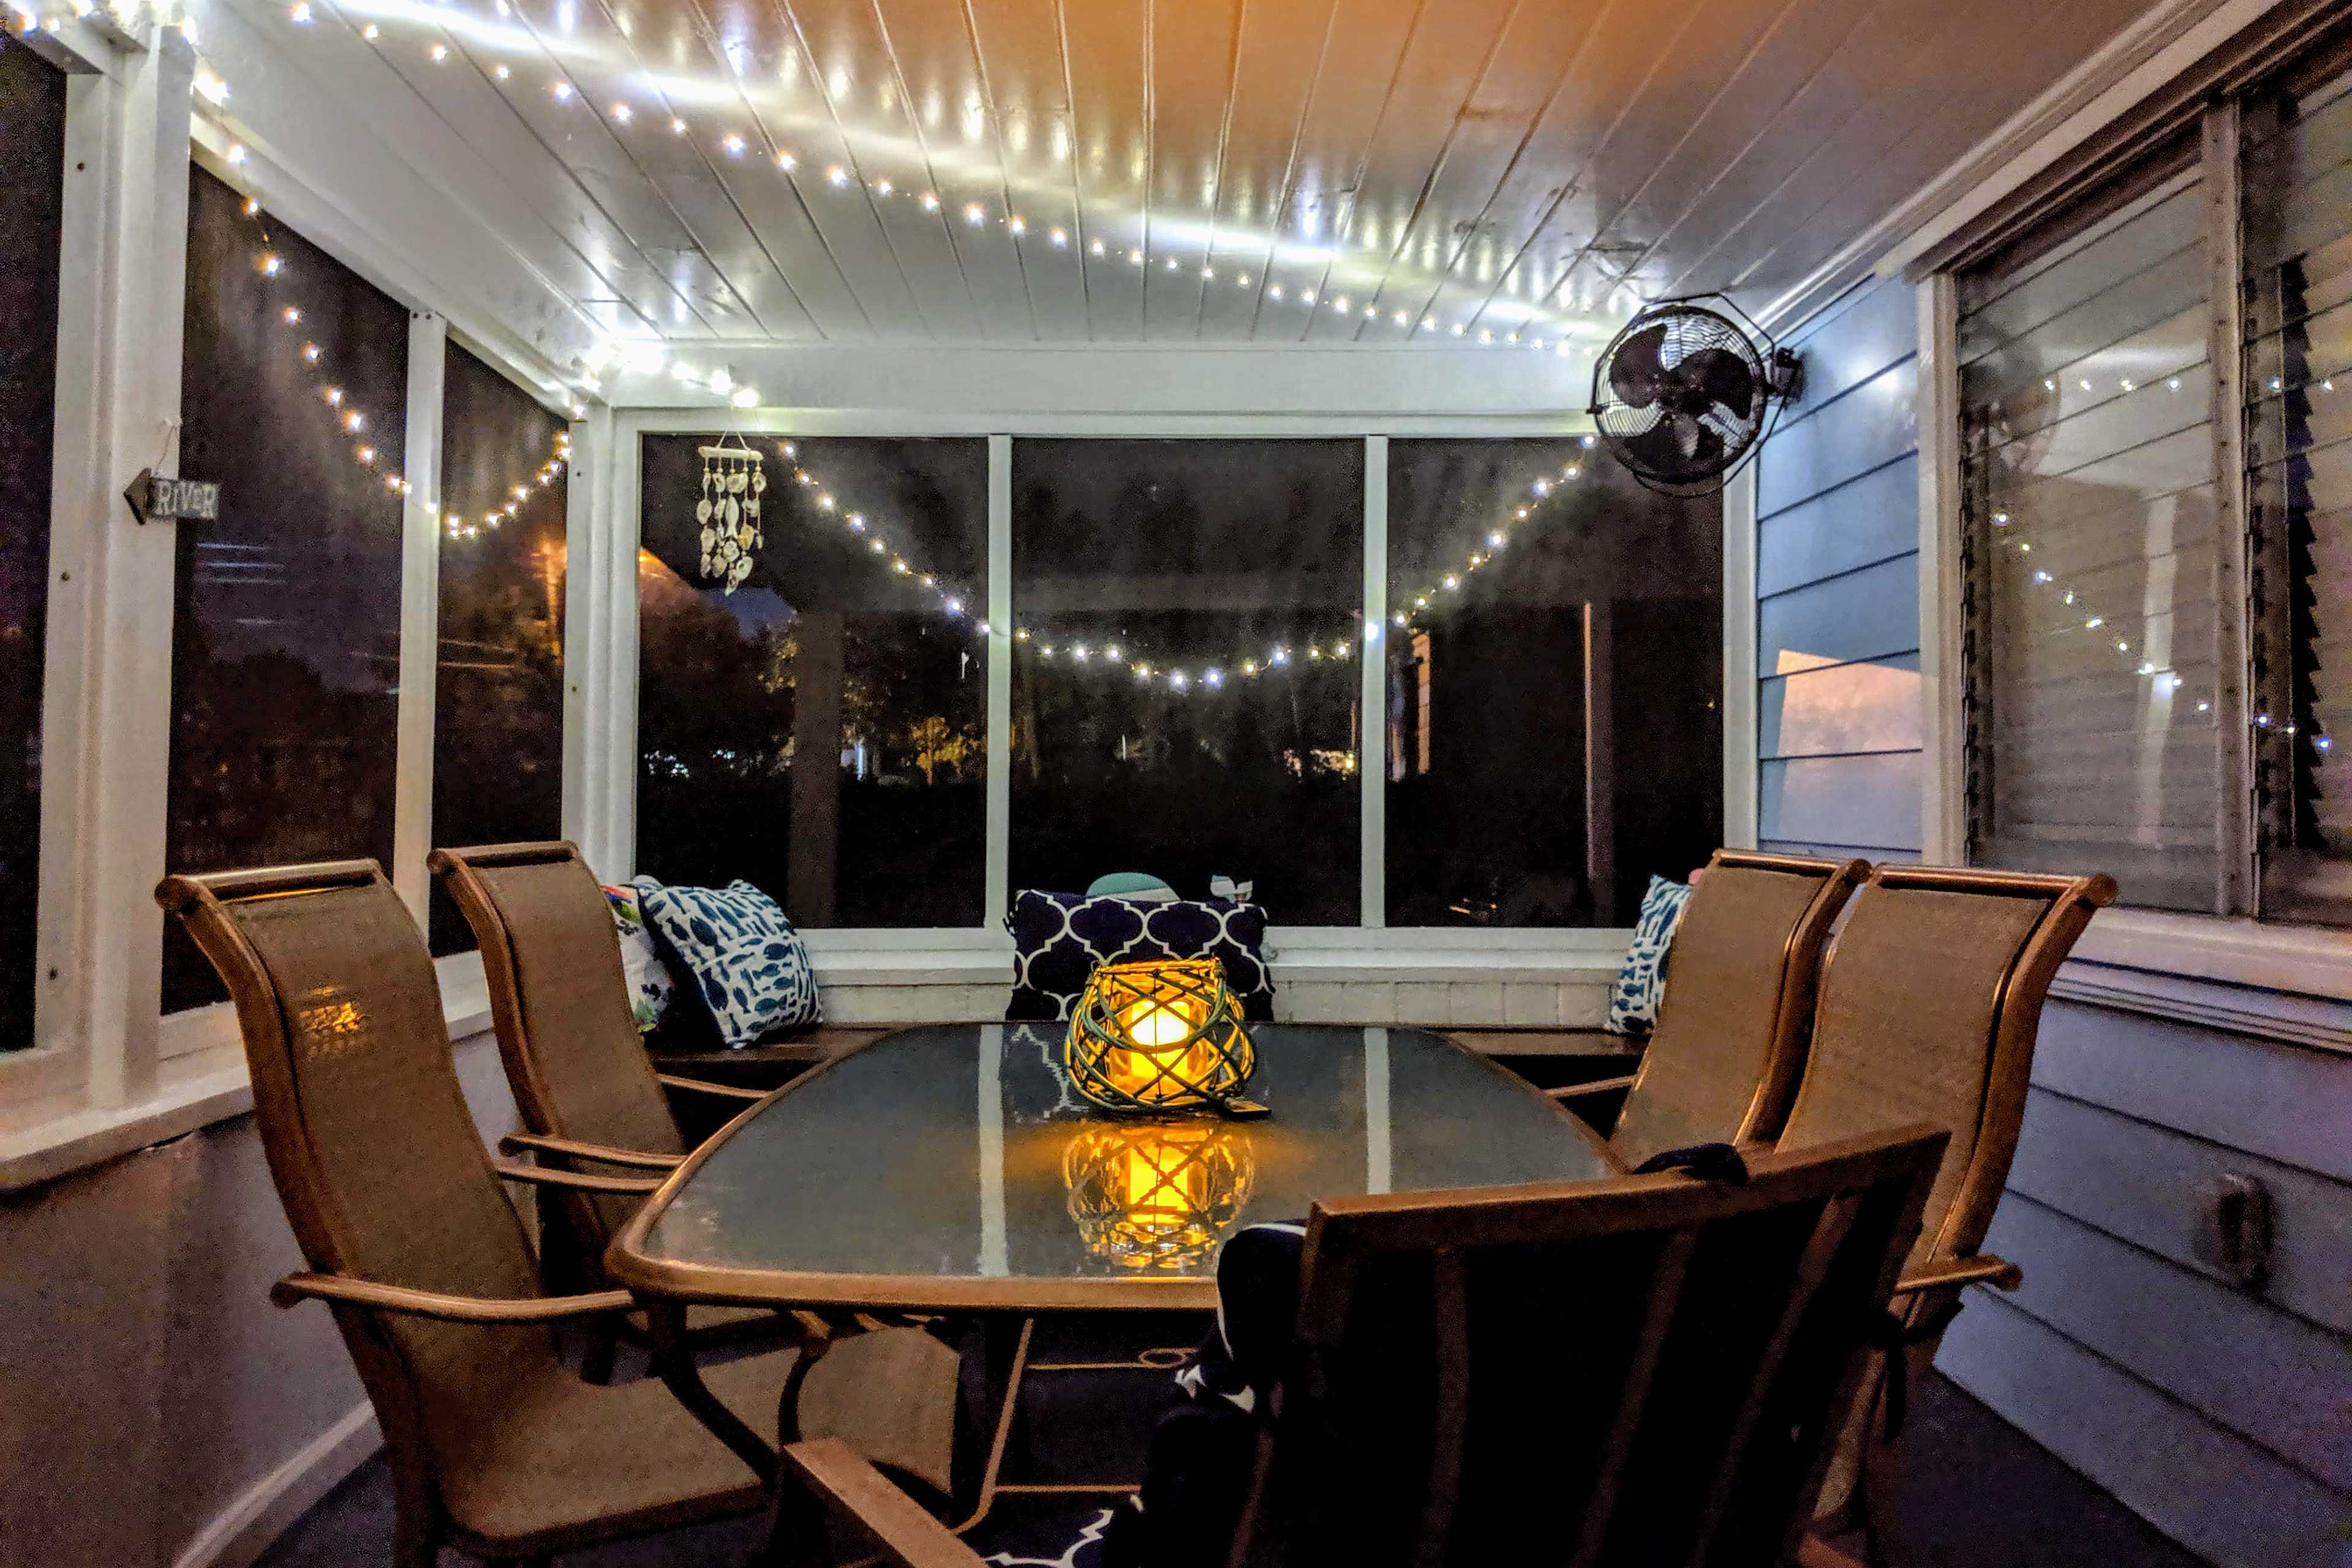 Twinkly lights illuminate the porch, perfect for nighttime chats.